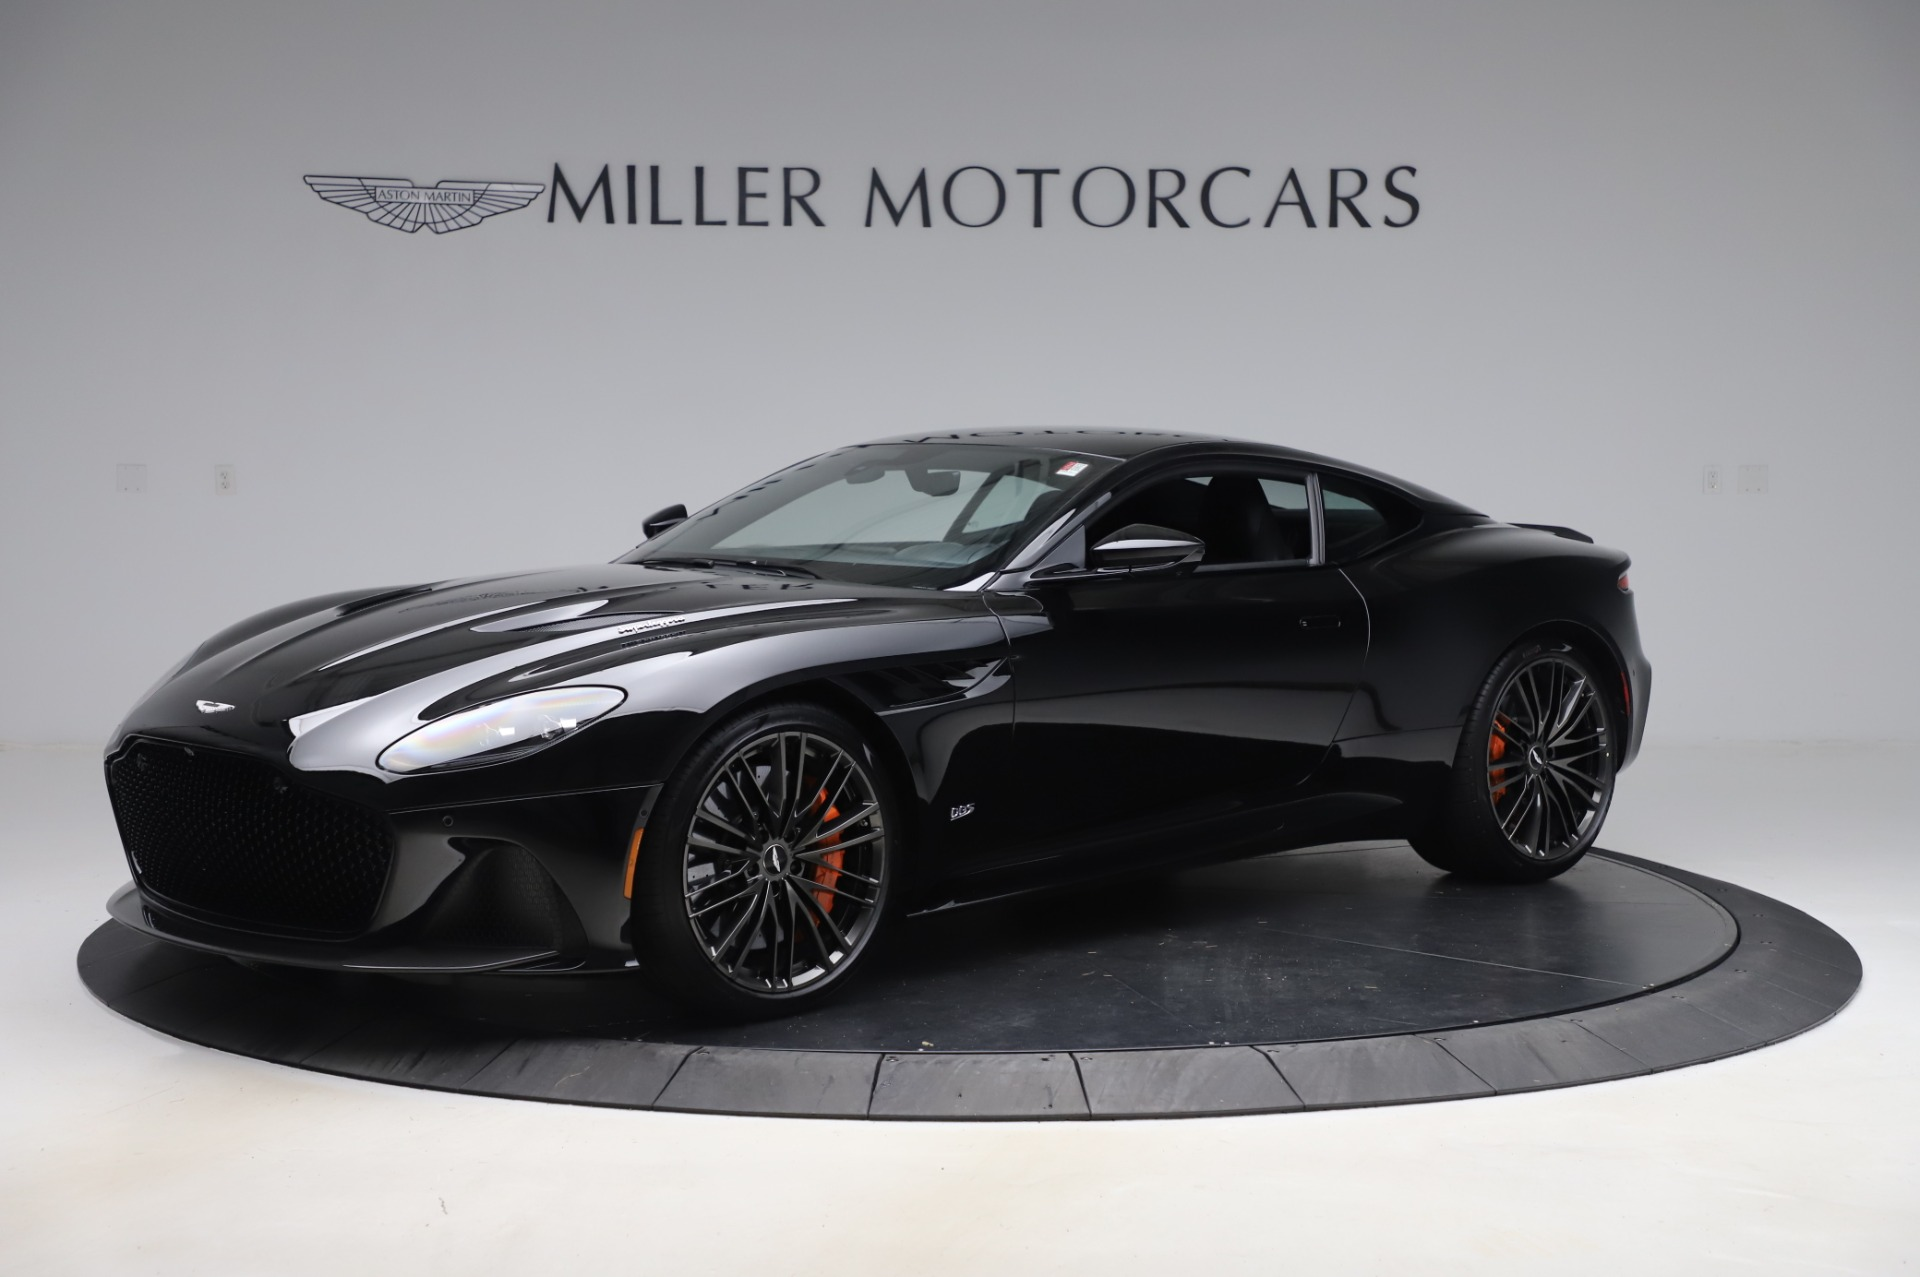 New 2020 Aston Martin Dbs Superleggera Coupe For Sale 328 786 Miller Motorcars Stock A1502